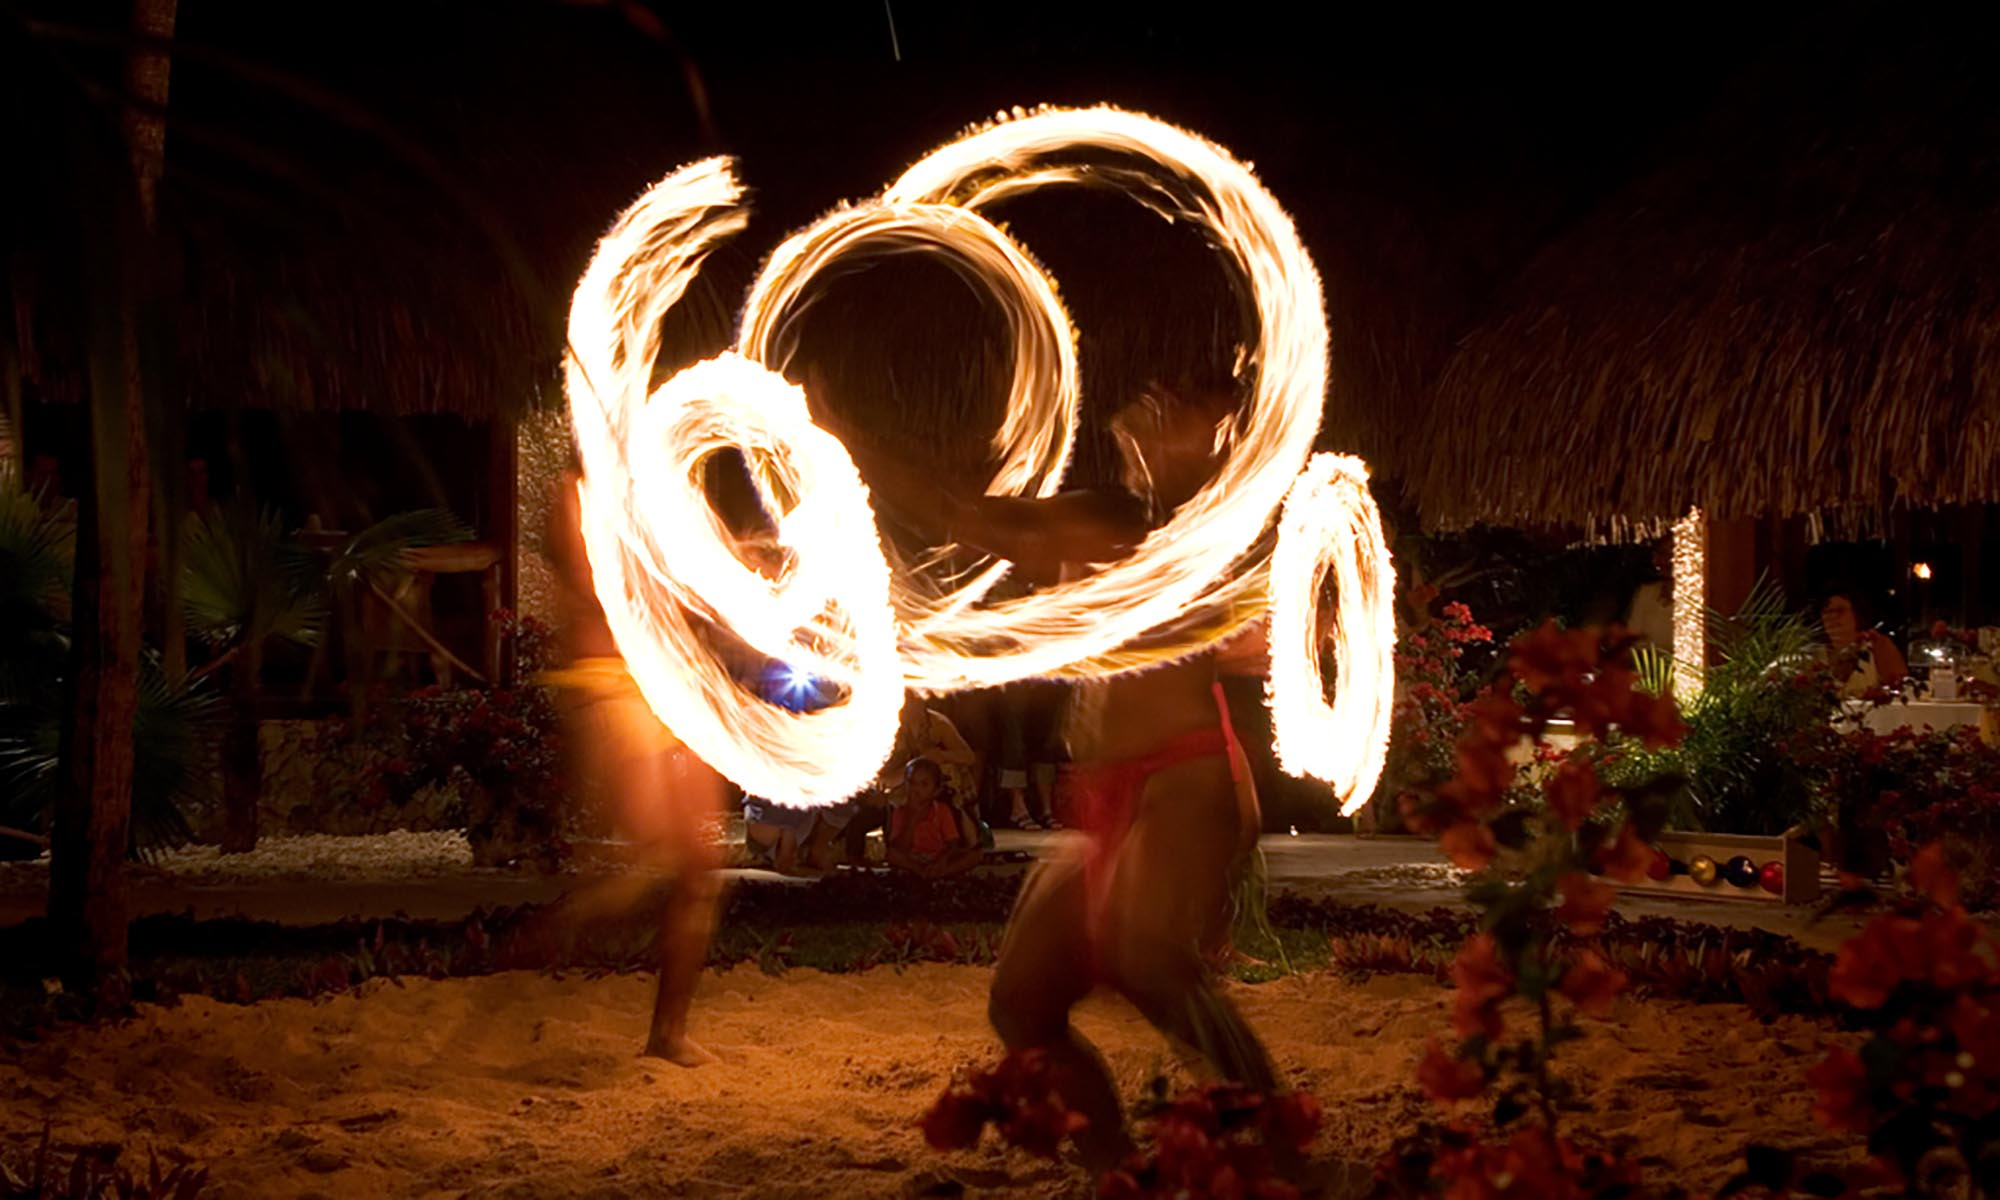 InterContinental Bora Bora Le Moana Resort, Polynesian Fire Dance